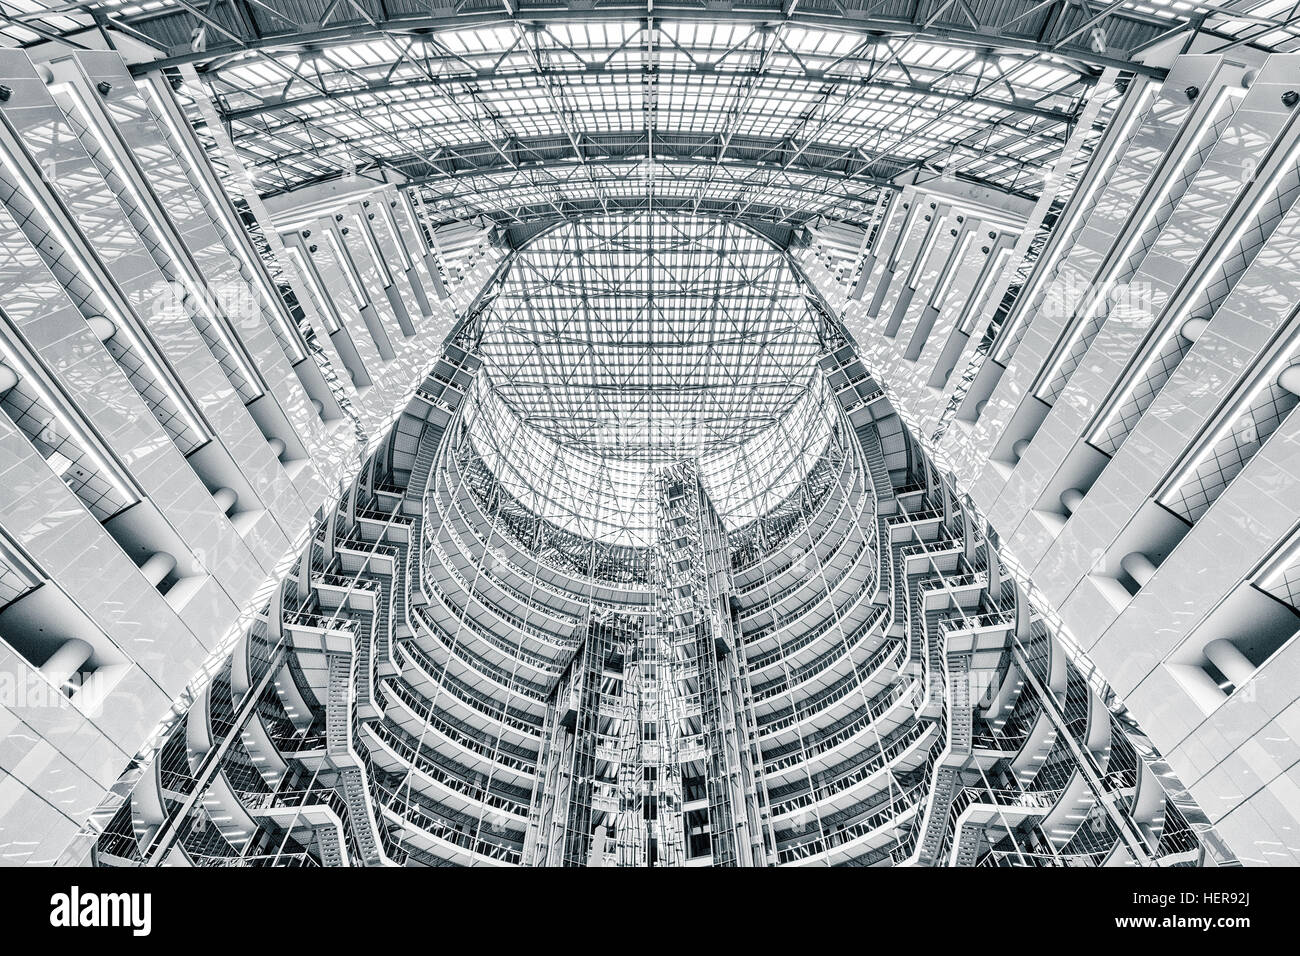 Symmetrische Innenarchitektur, Chicago, James R. Thompson Center